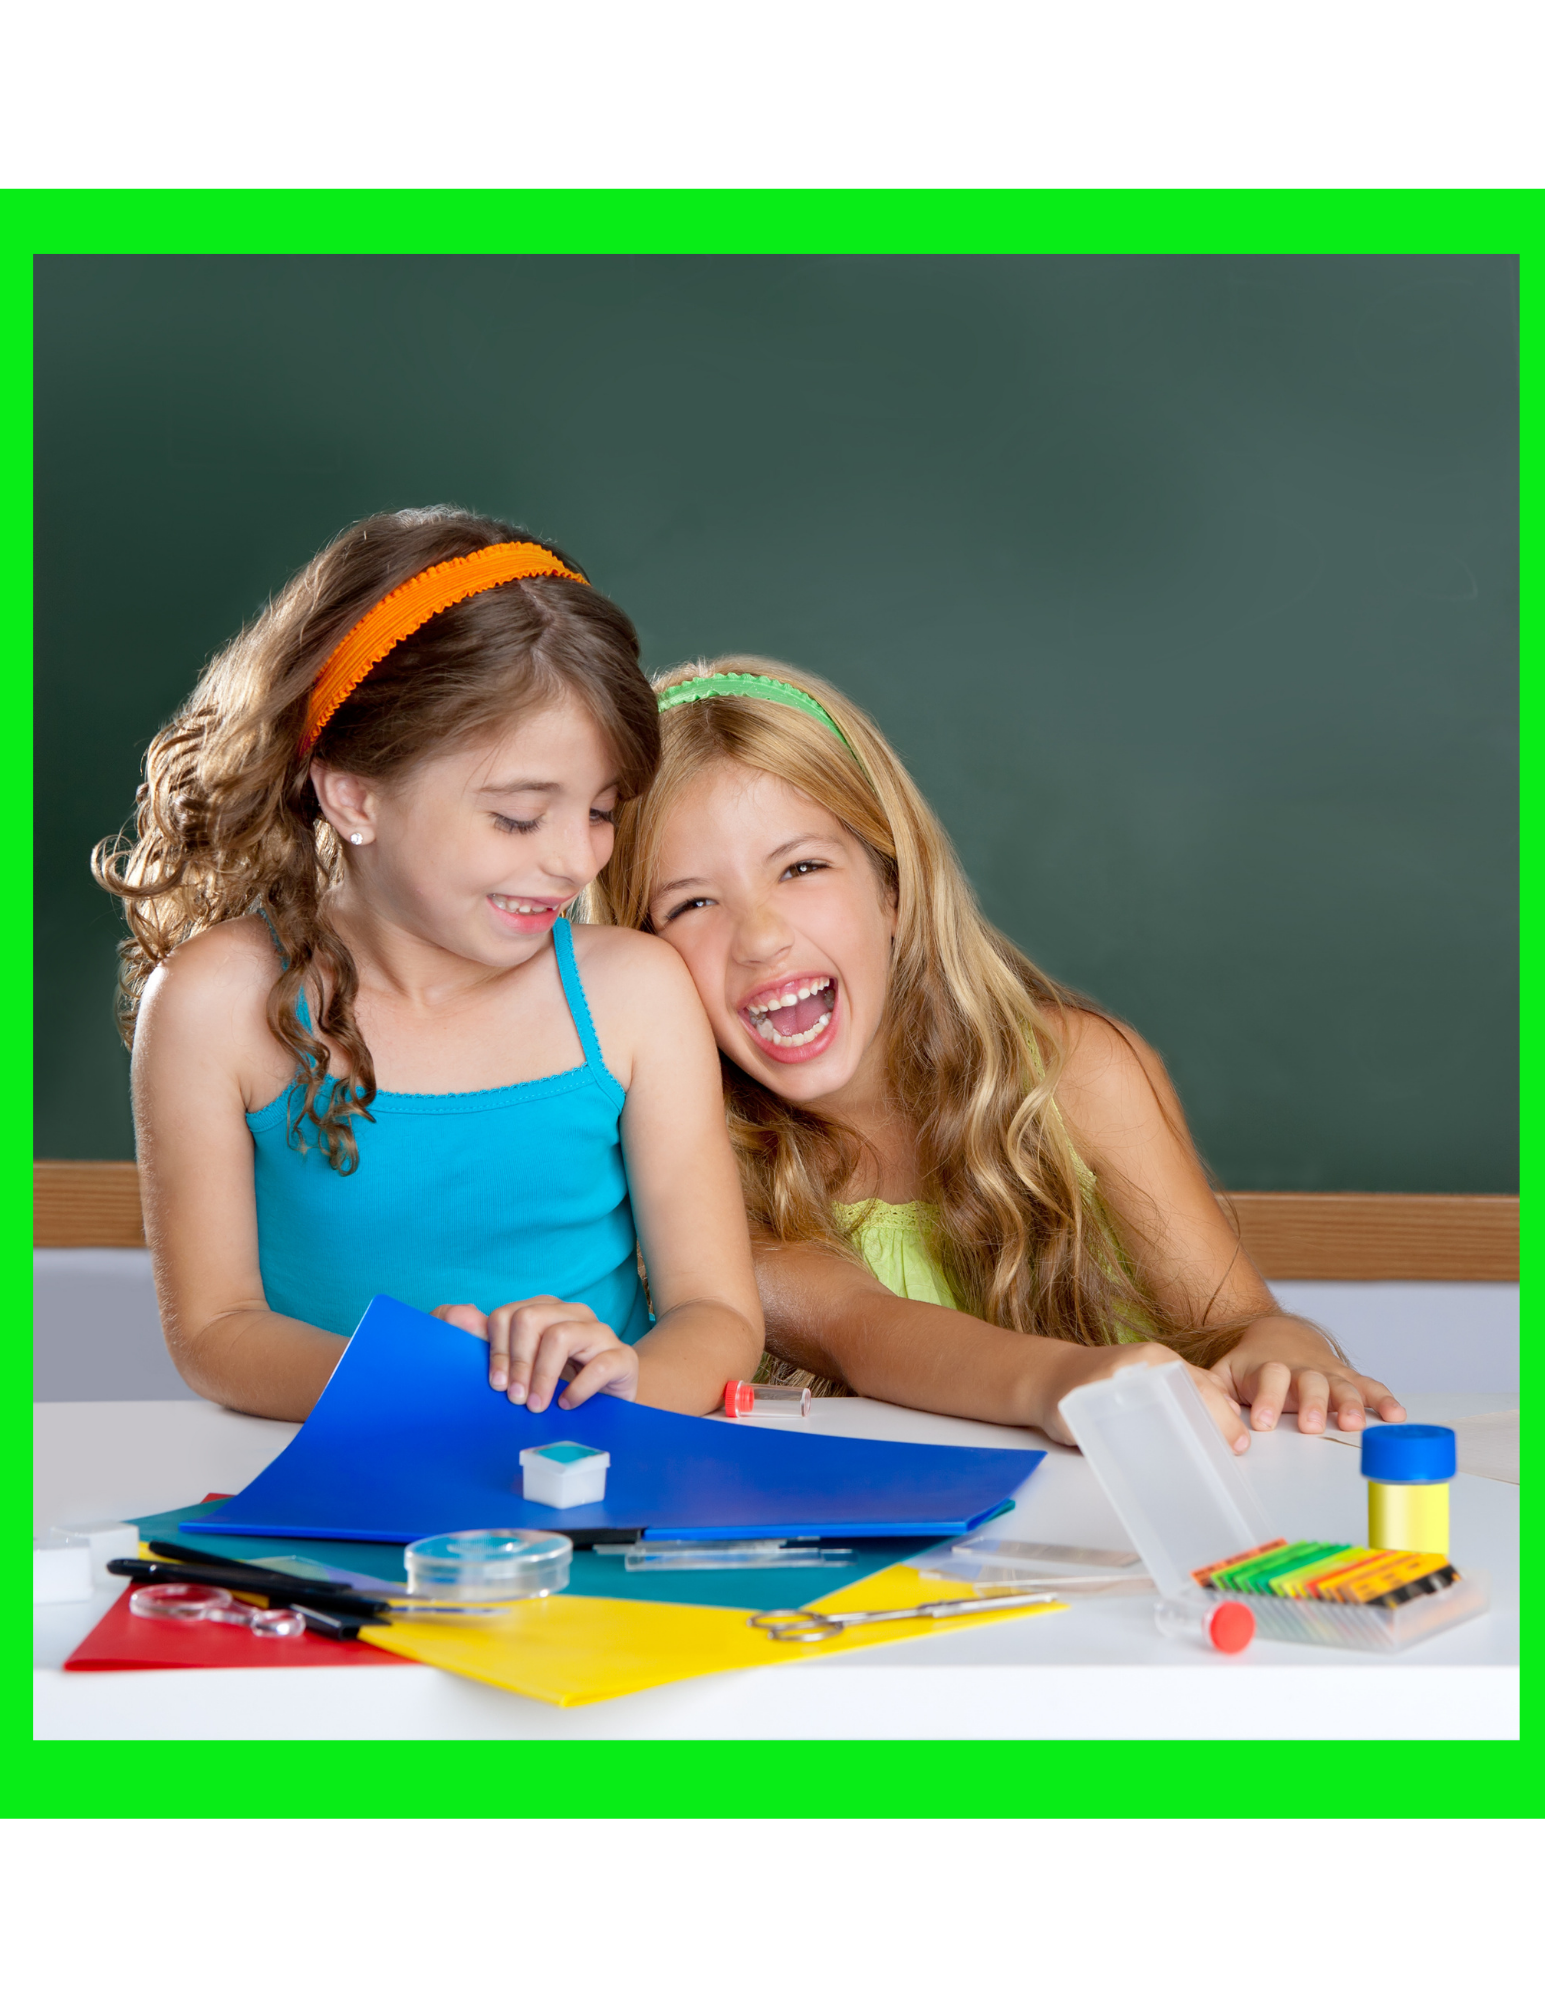 2 girls laughing at school for the product, Mis 5 Cositas, A Spanish Gratitude Journal.